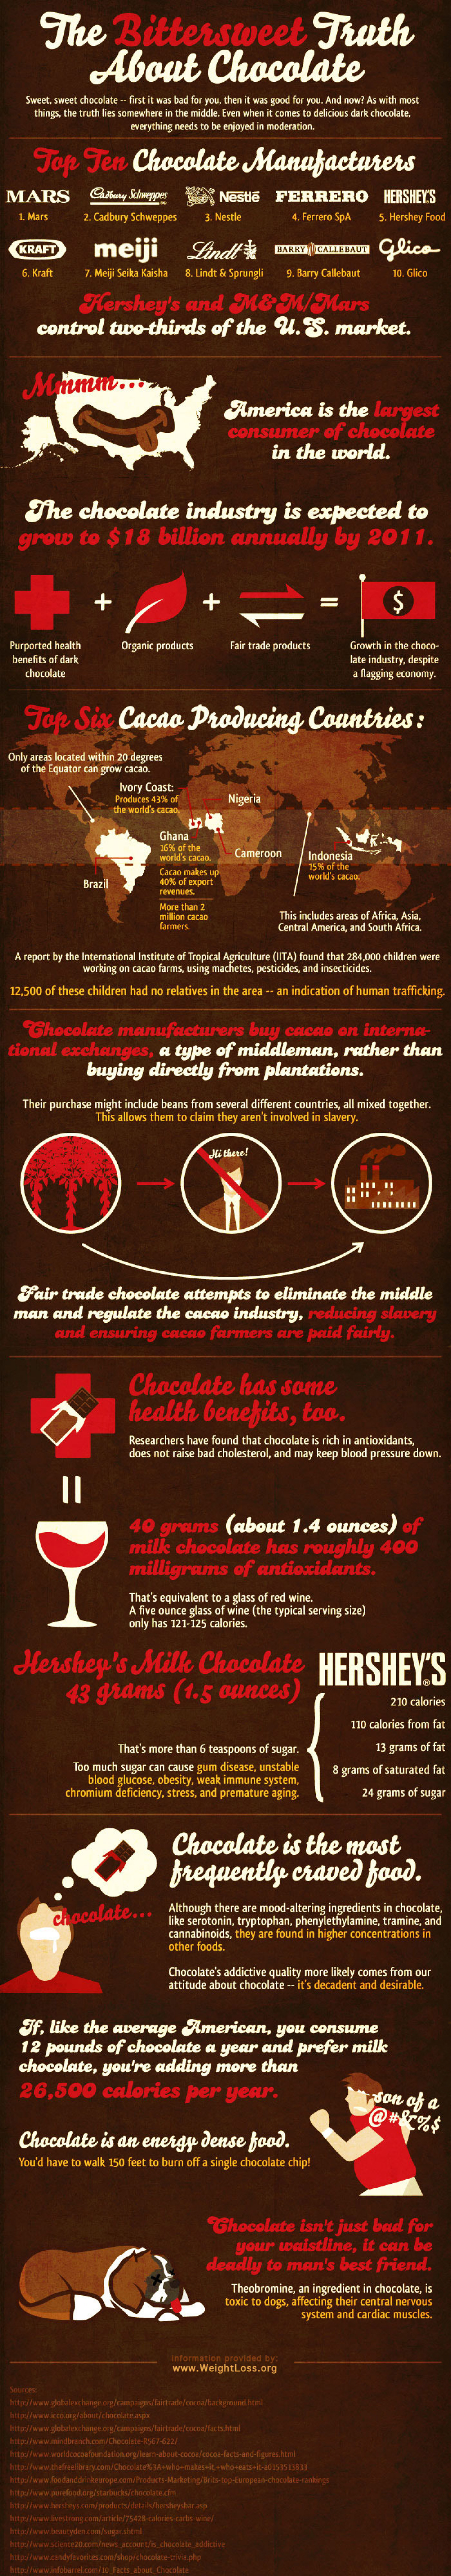 The Truth About Chocolate Infographic